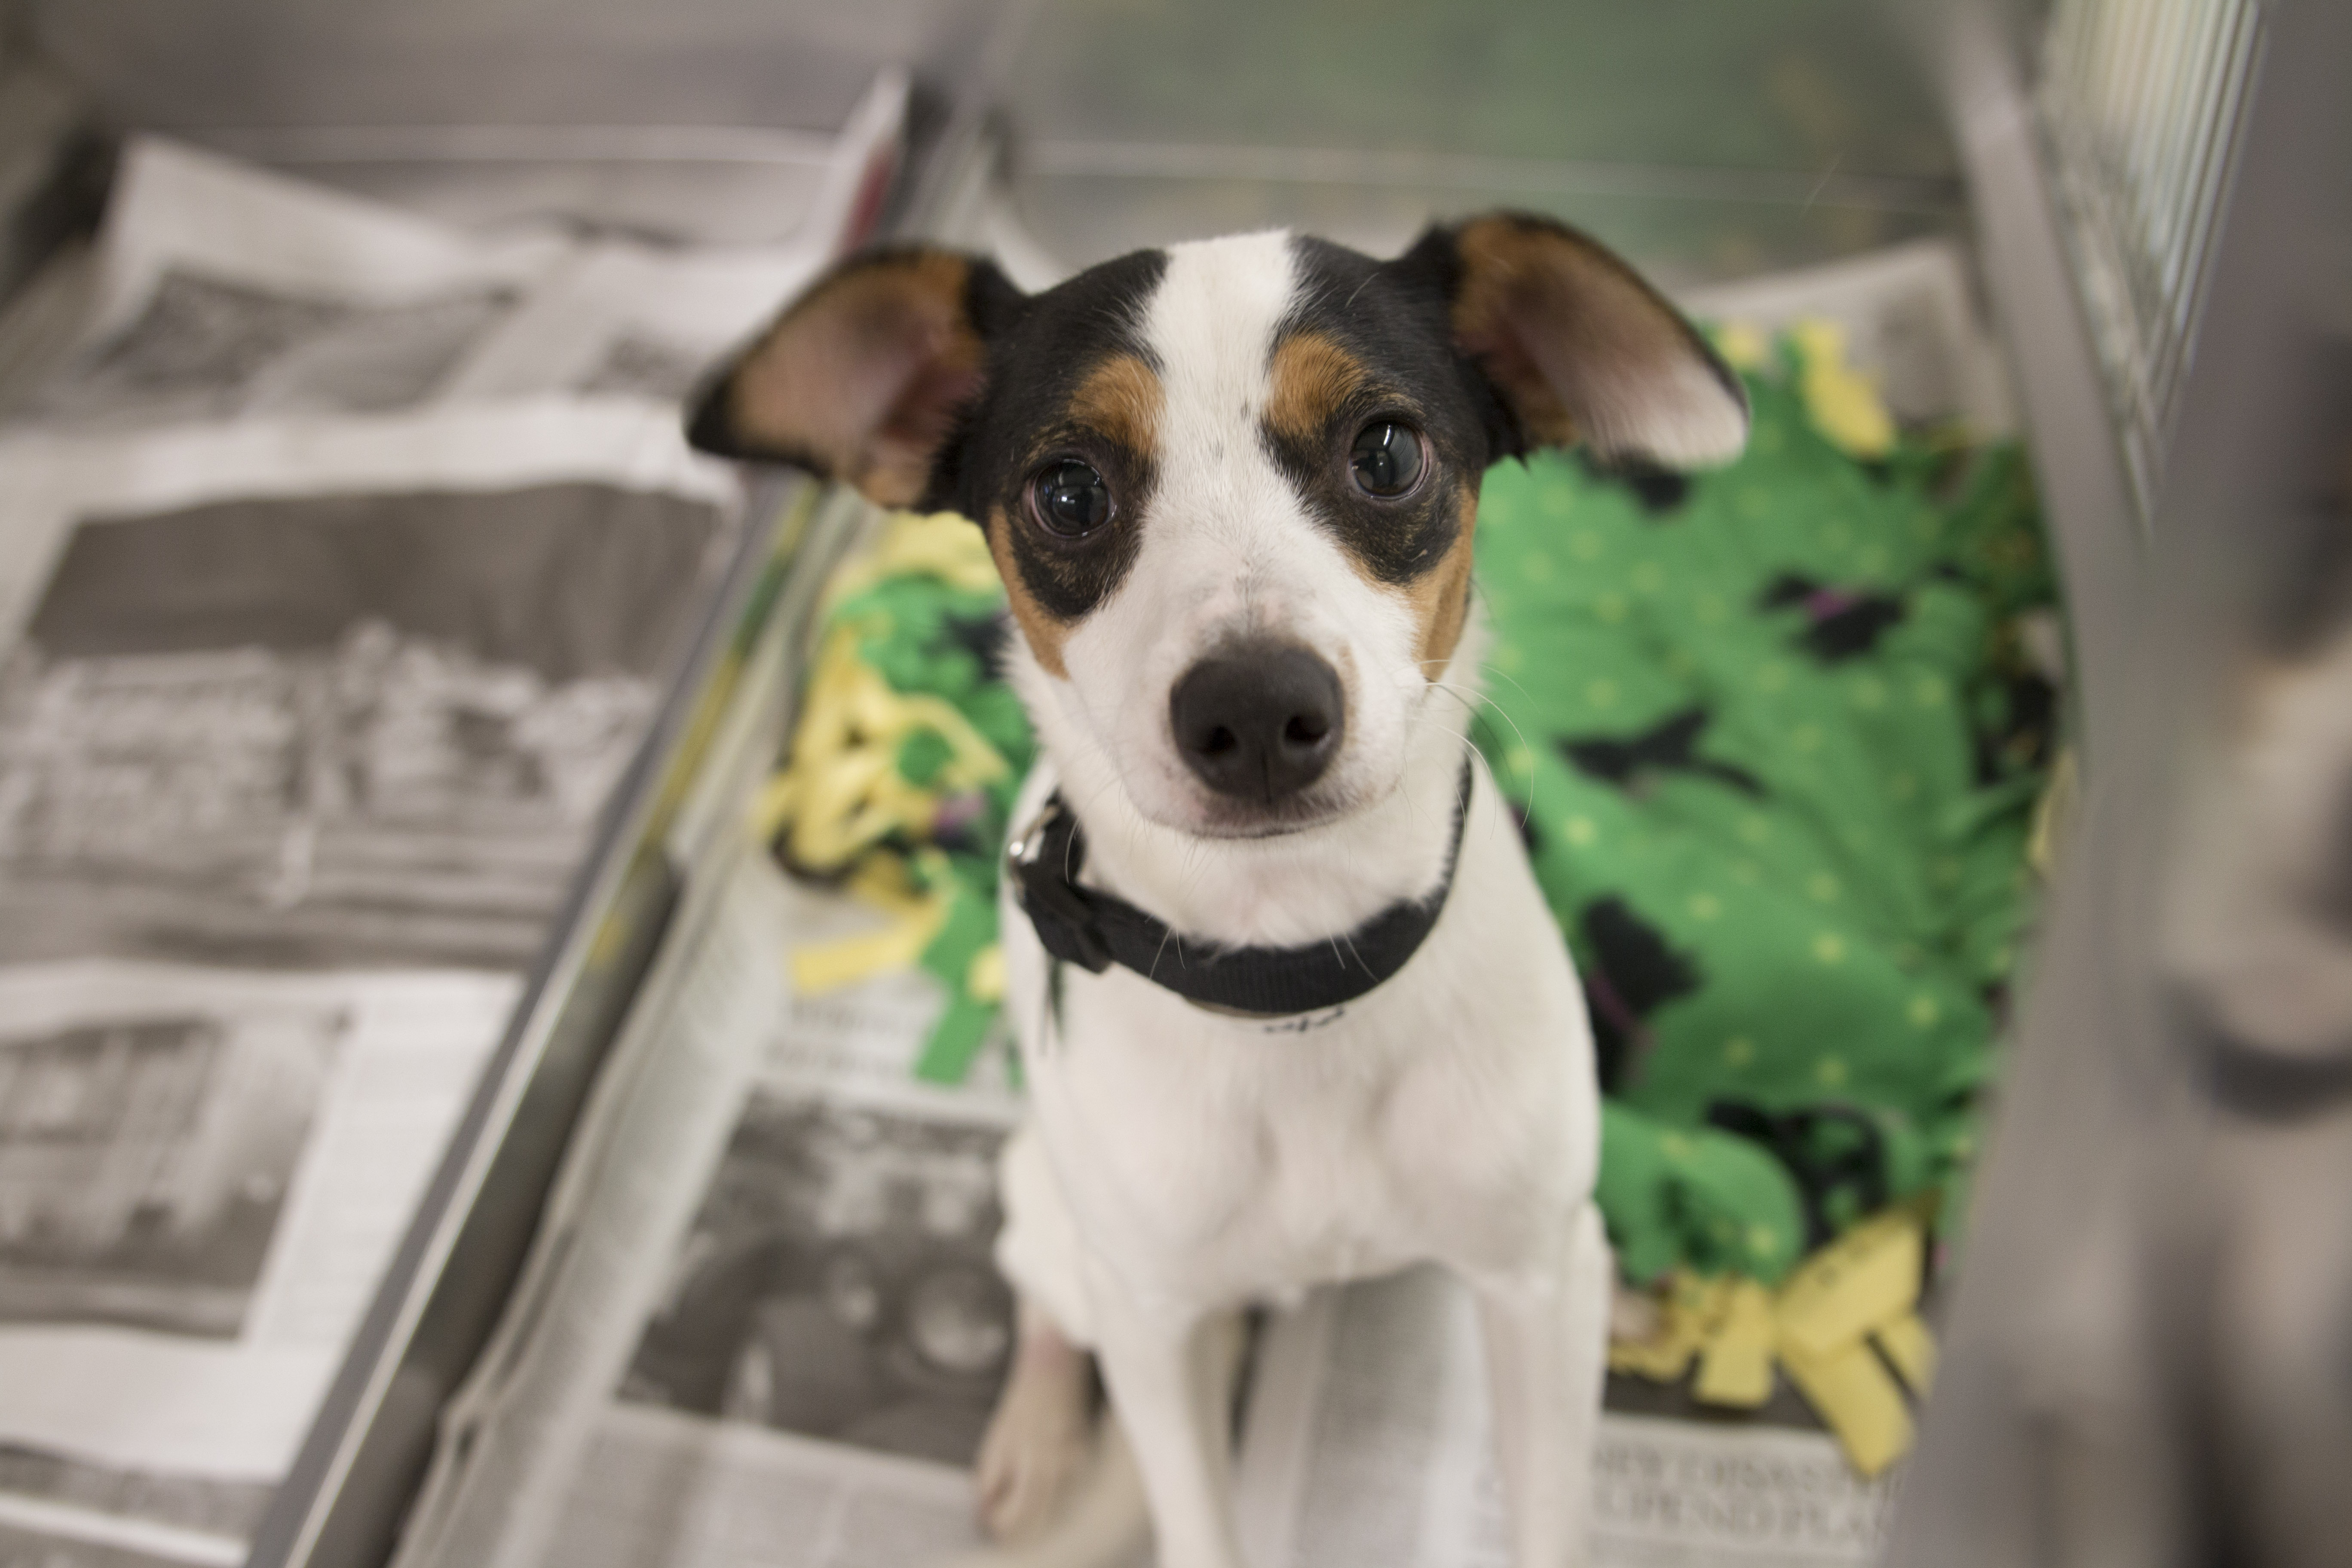 Rocket is a 1-year-old Rat Terrier mix